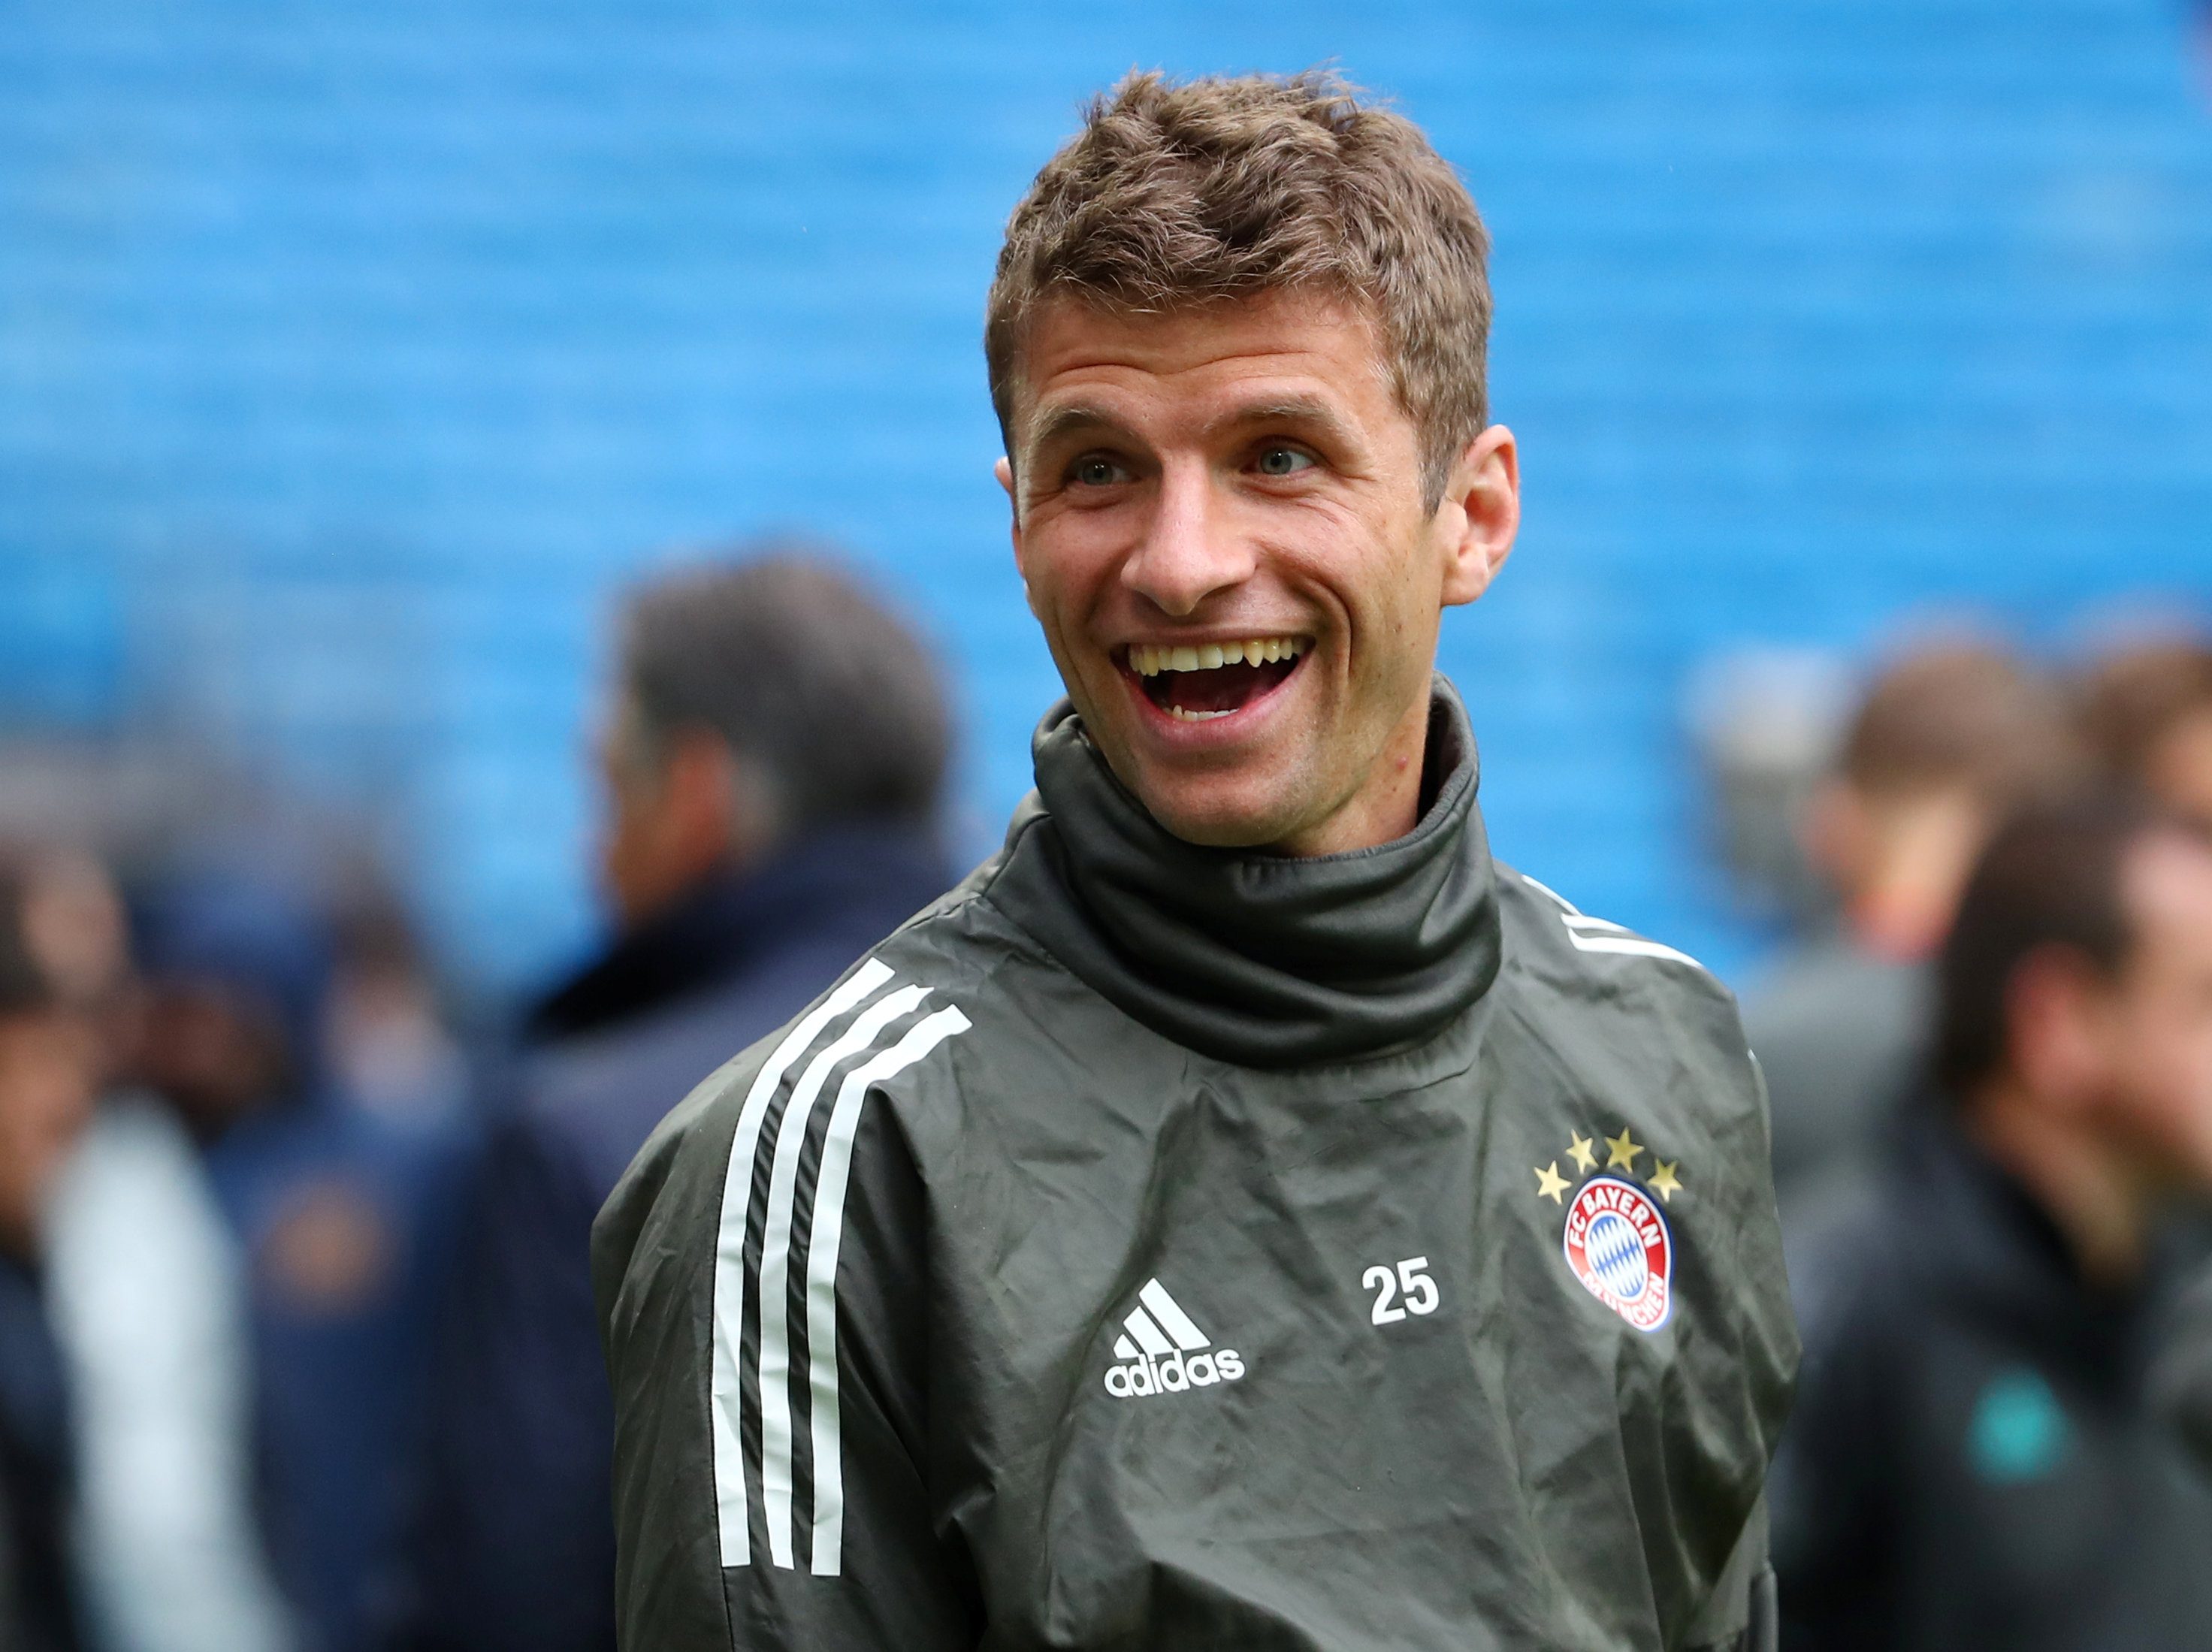 Germany squad World Cup 2018 Thomas Muller